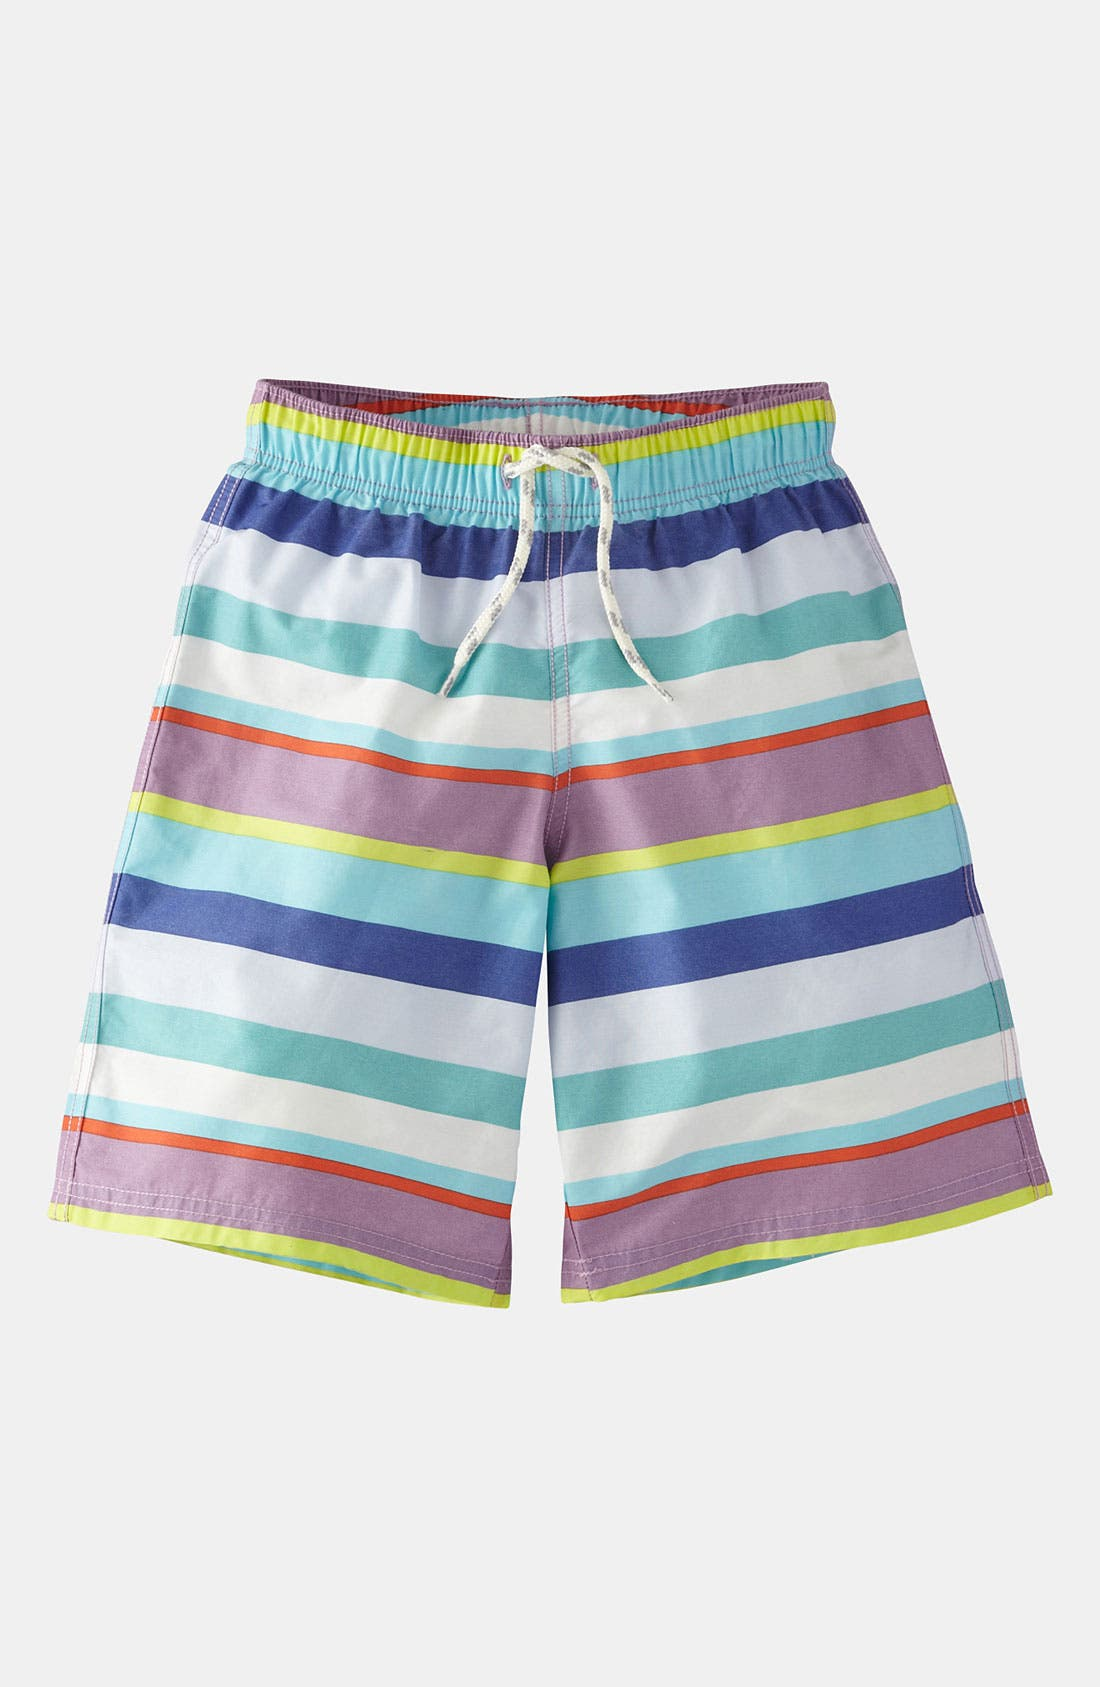 Main Image - Mini Boden Swim Shorts (Toddler, Little Boys & Big Boys)